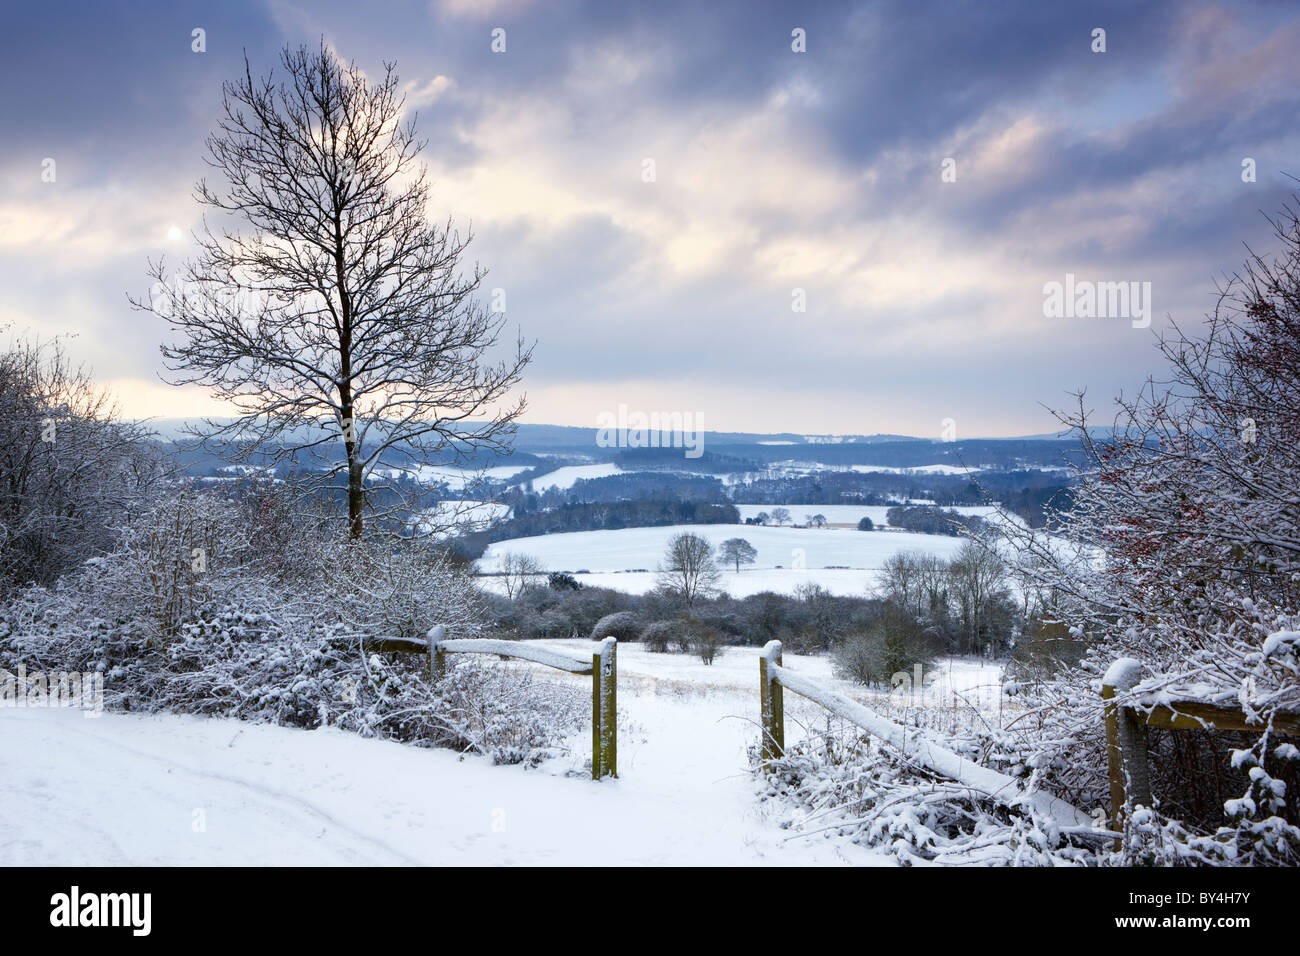 The sun beginning to break through the cloud on a cold wintry morning at Newlands Corner on the Albury Downs - Stock Image